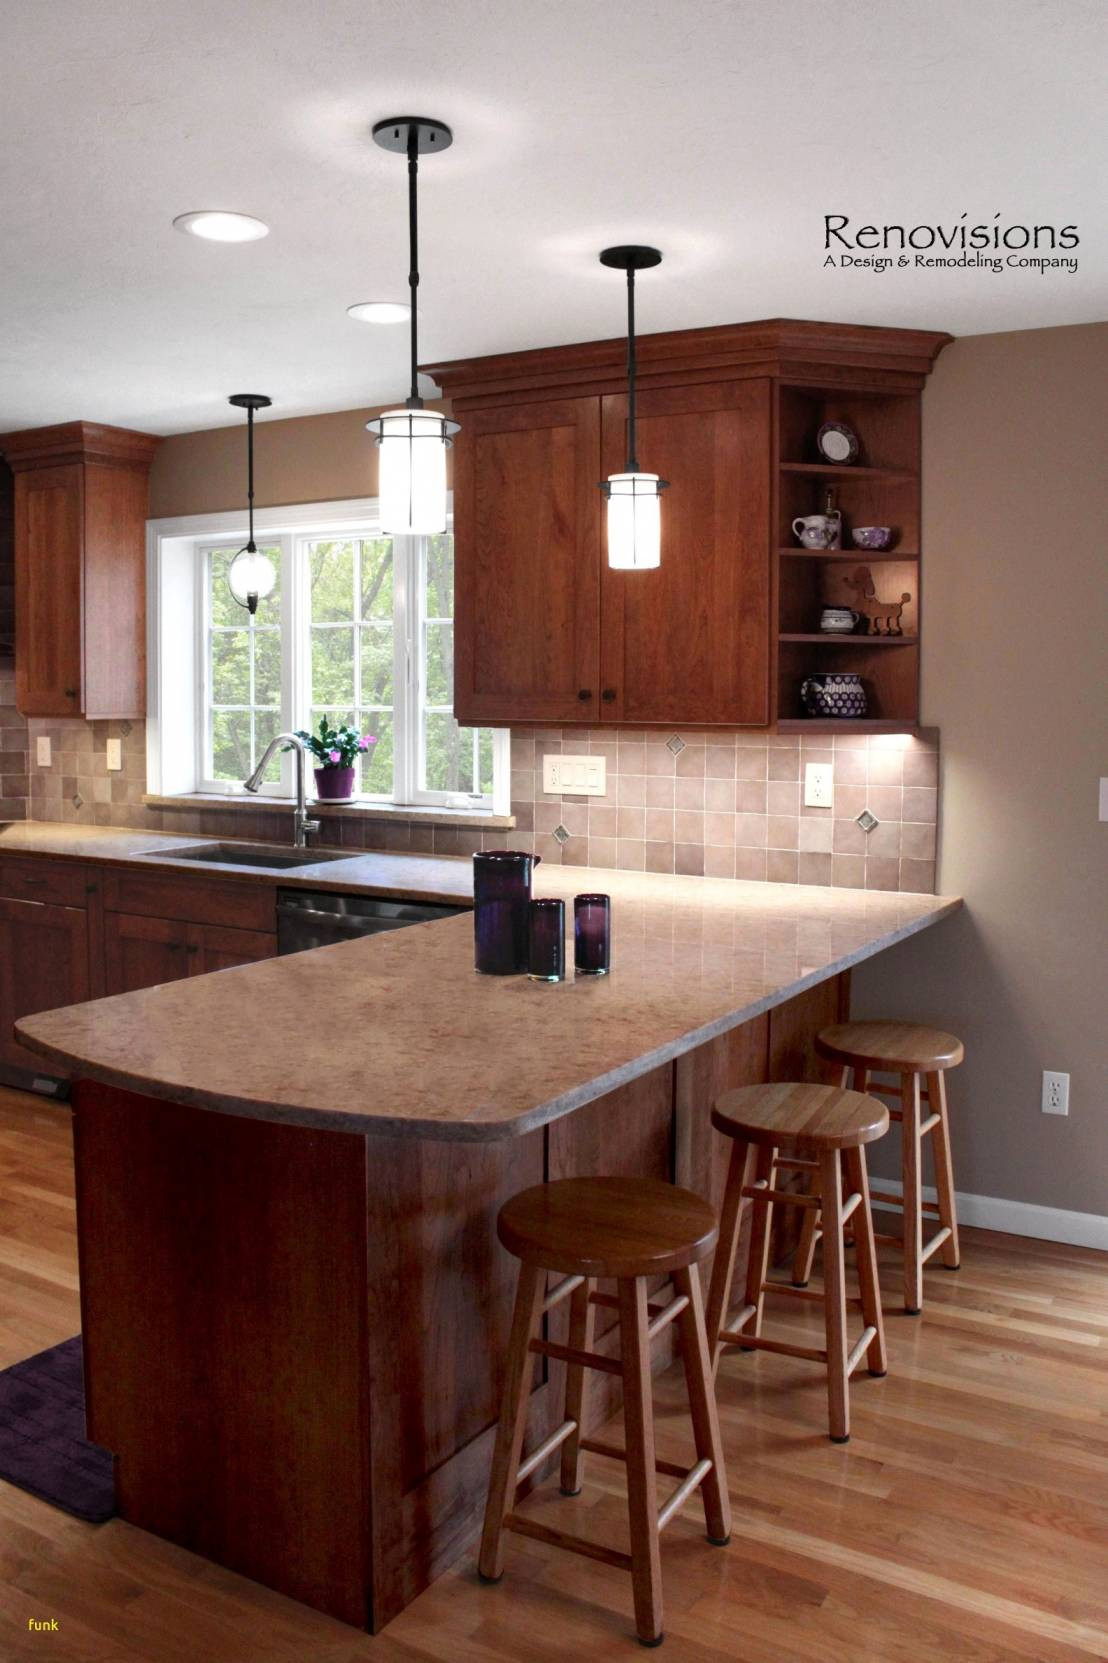 is laminate hardwood flooring good of 25 luxury can i install kitchen cabinets over laminate flooring within quality cabinets beautiful colors for kitchen cabinets unique kitchen cabinet 0d kitchen sink